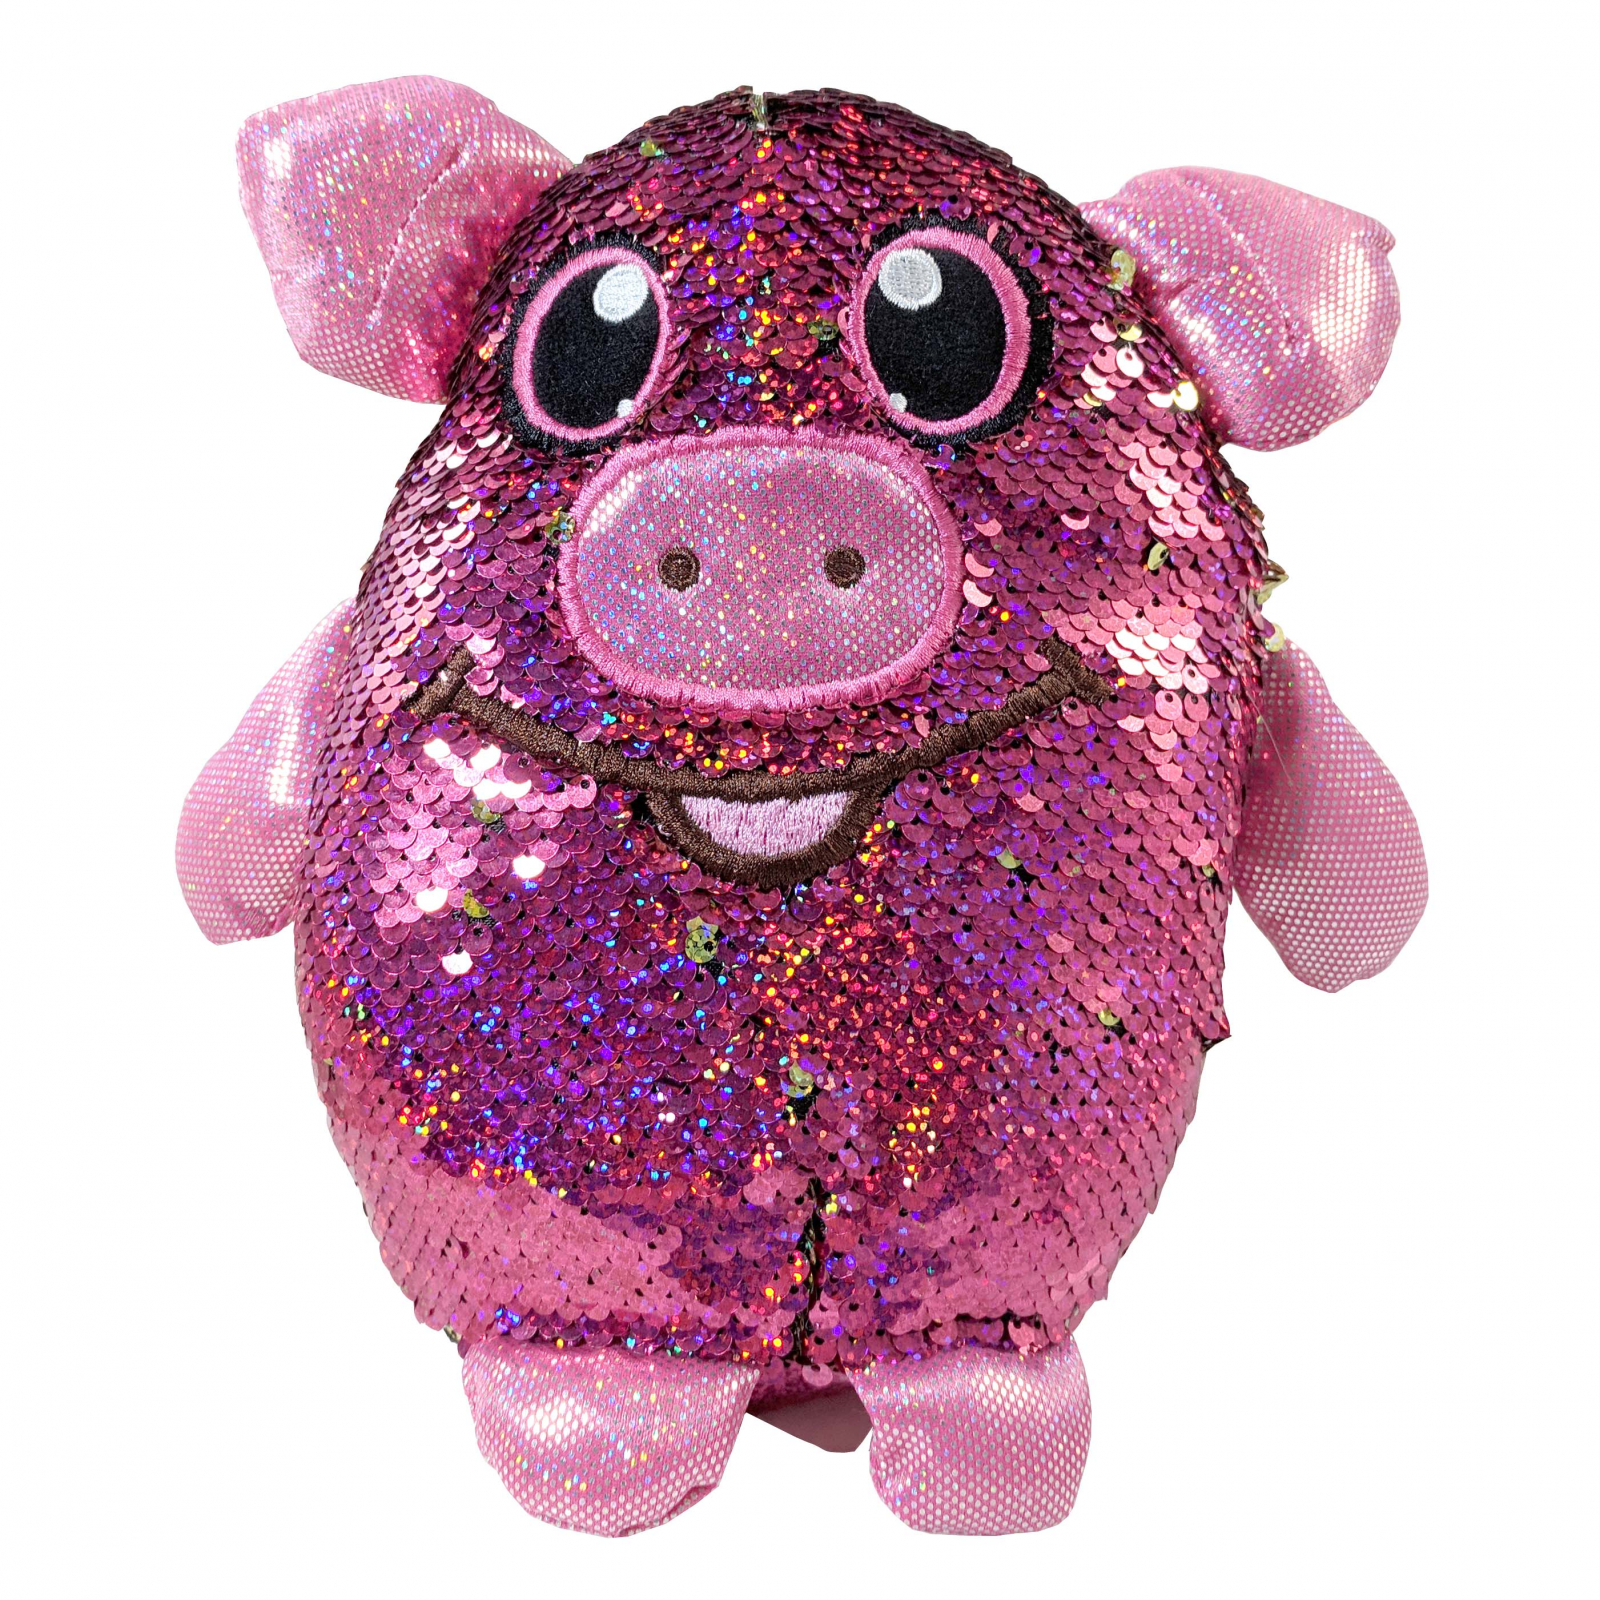 Shimmeez Polly Pig Reversible Sequin Plush Stuffed Animal